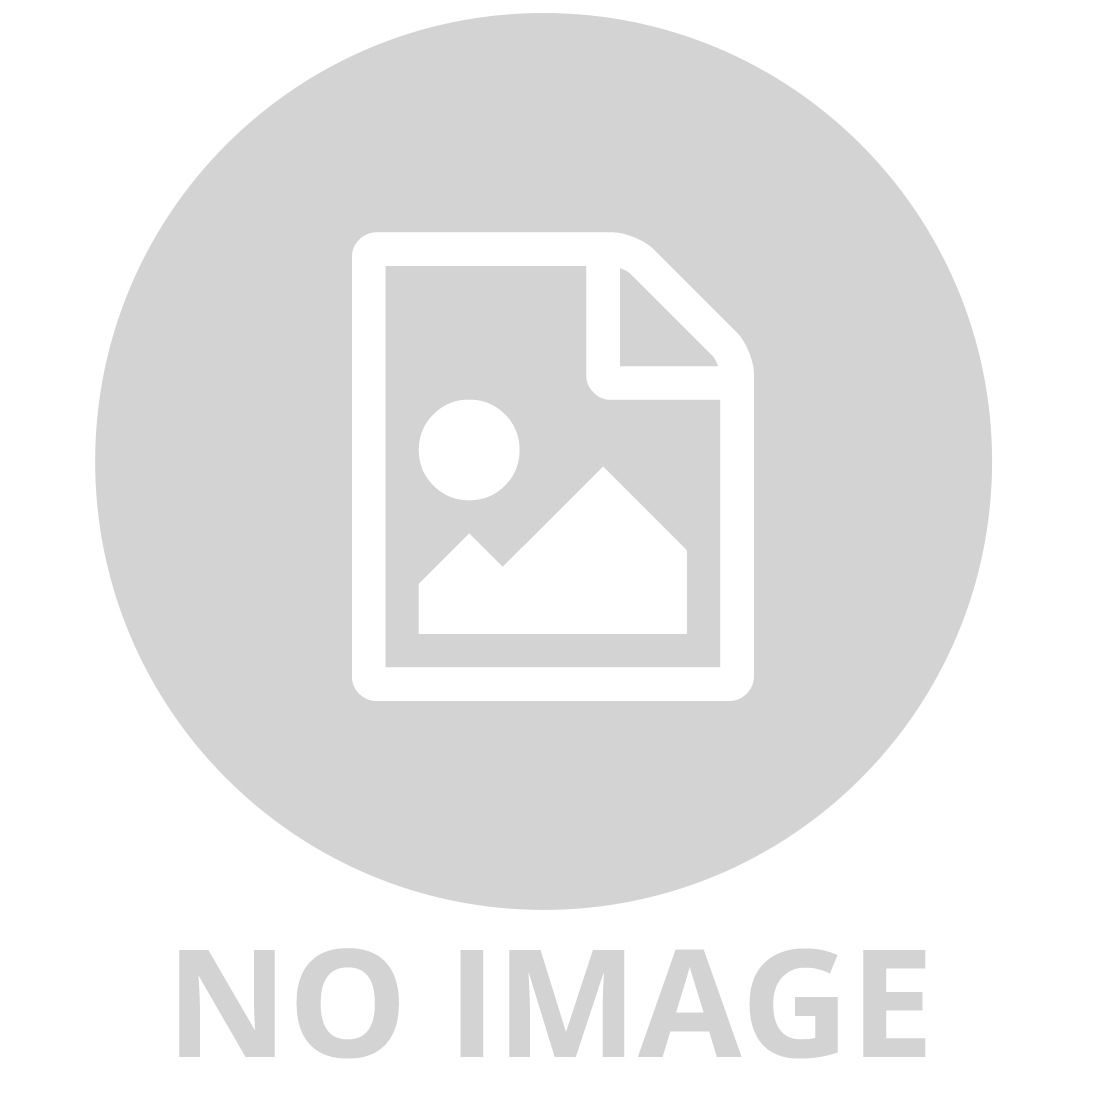 BLUE OPAL 300 LARGE PIECE PUZZLE - GIANT MAP PUZZLE AROUND THE WORLD